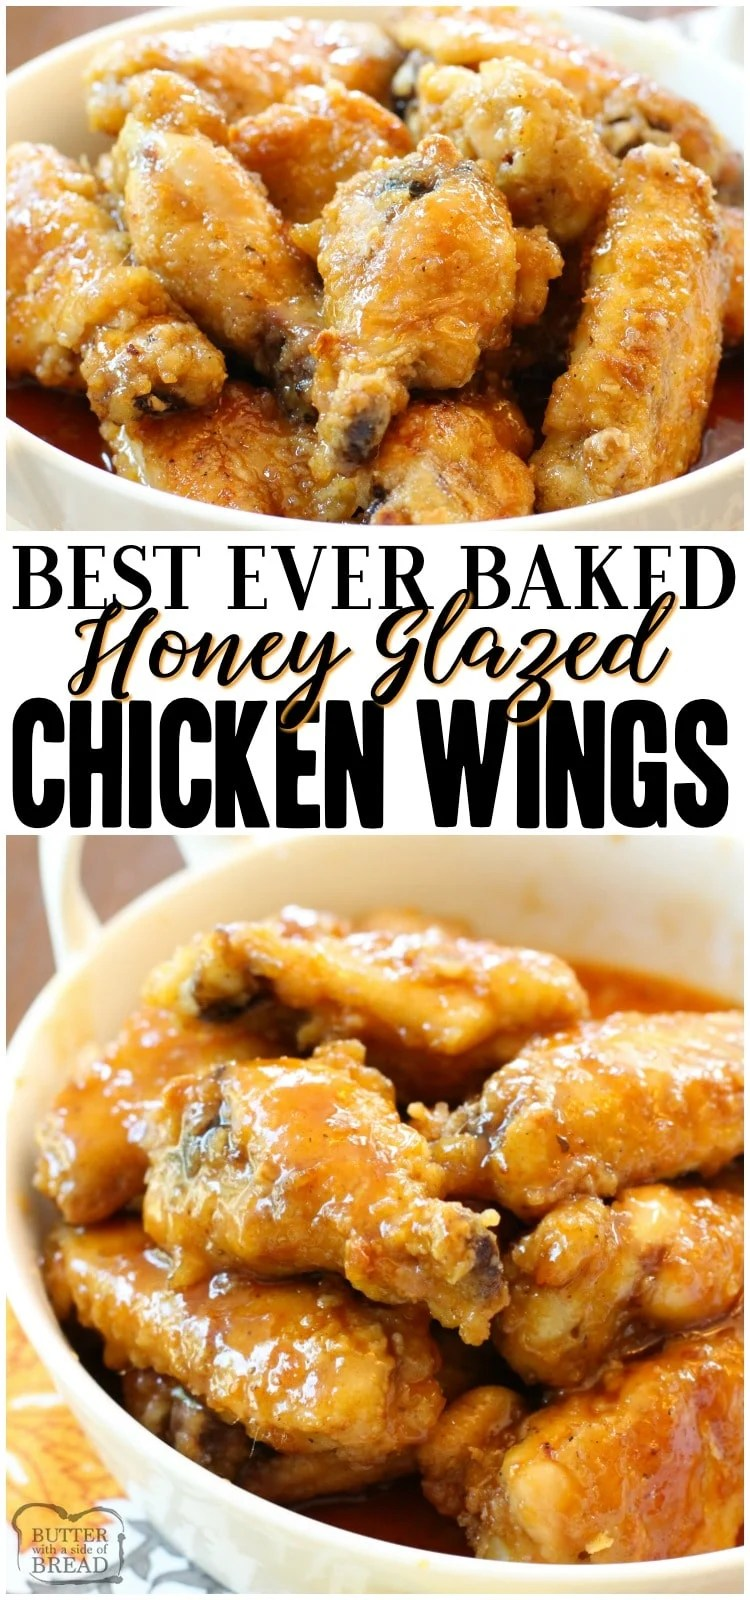 Honey Glazed Chicken Wings are baked, then smothered with a delicious sweet honey glaze. Simple baked chicken wings recipe are literally finger-lickin' good! #chicken #wings #baked #honey #recipe #appetizer from BUTTER WITH A SIDE OF BREAD